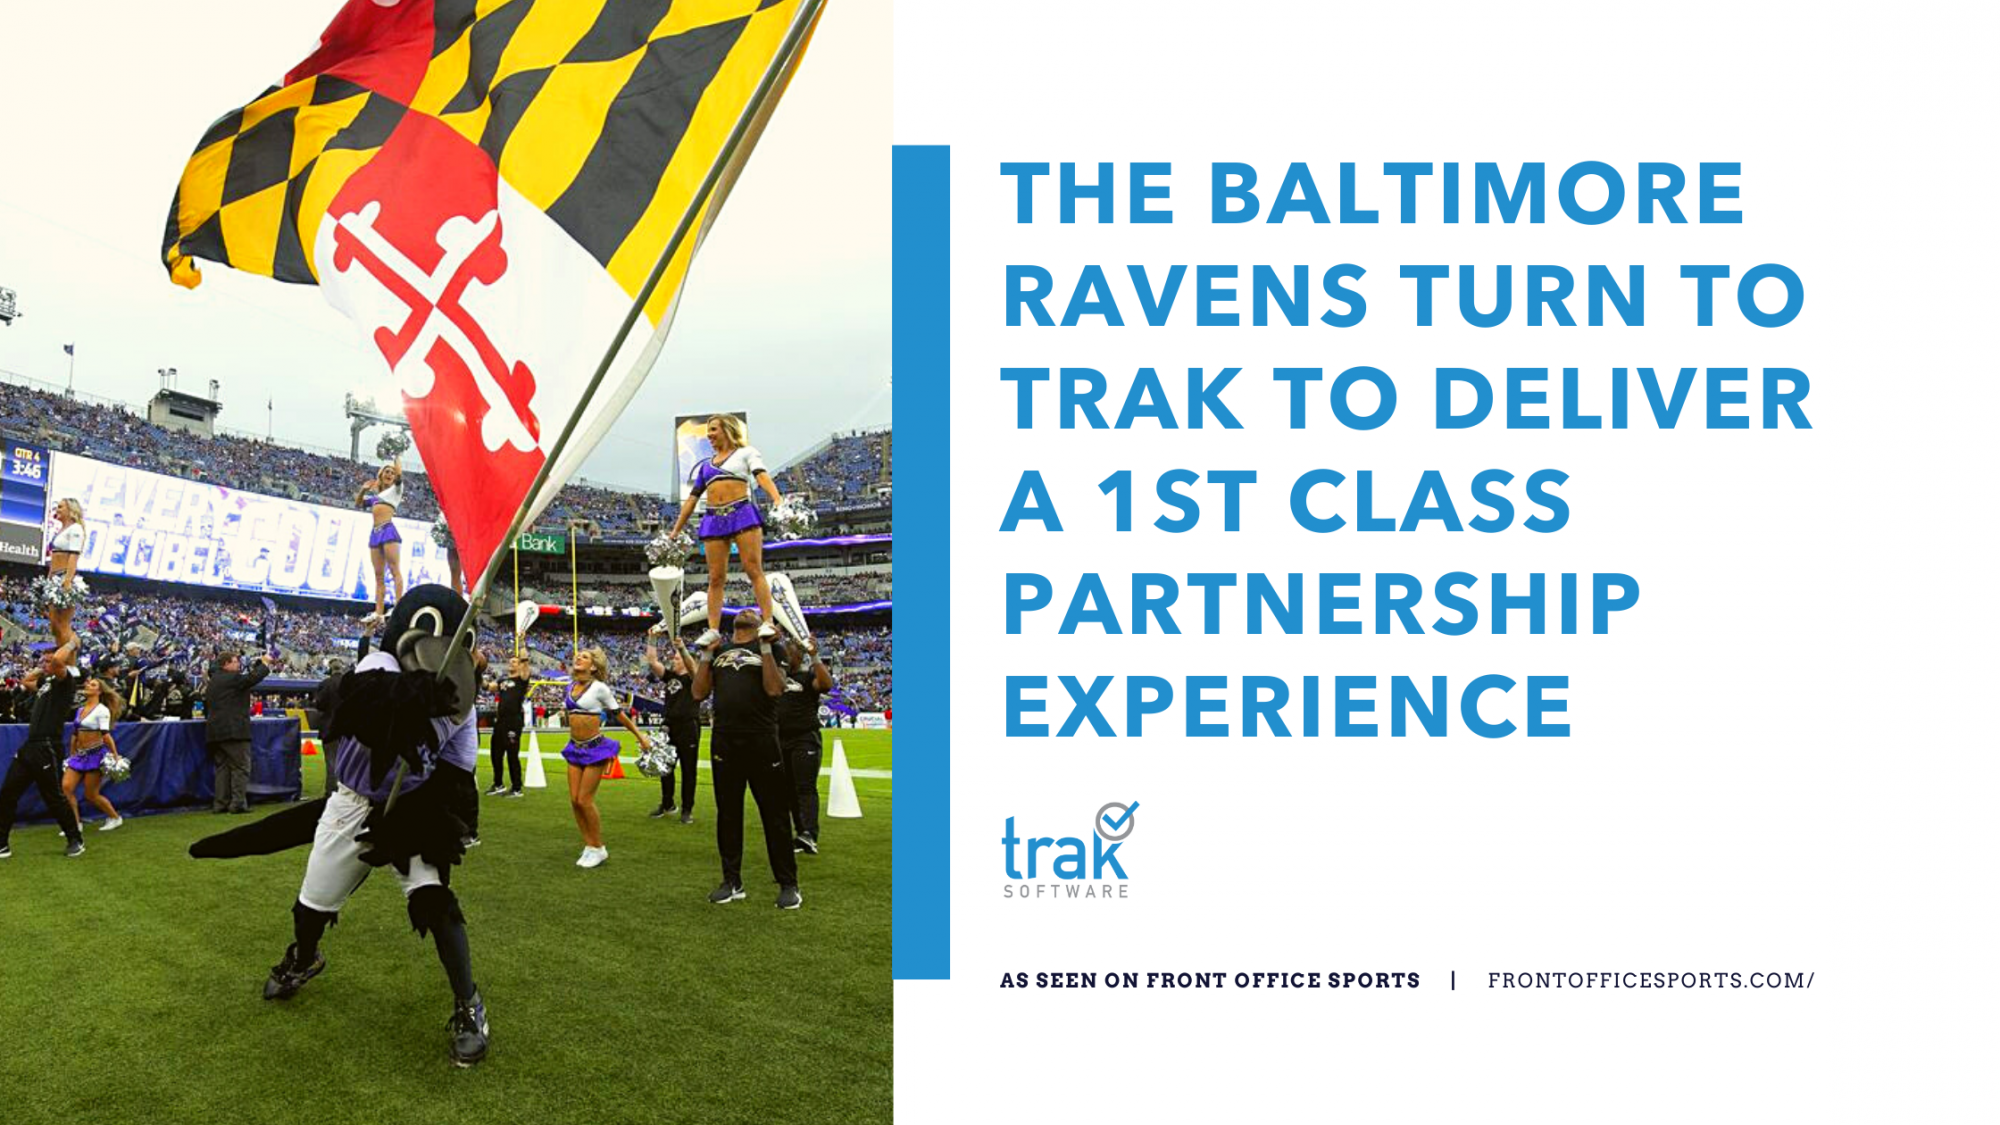 The Baltimore Ravens Turn to Trak to Deliver a 1st Class Partnership Experience